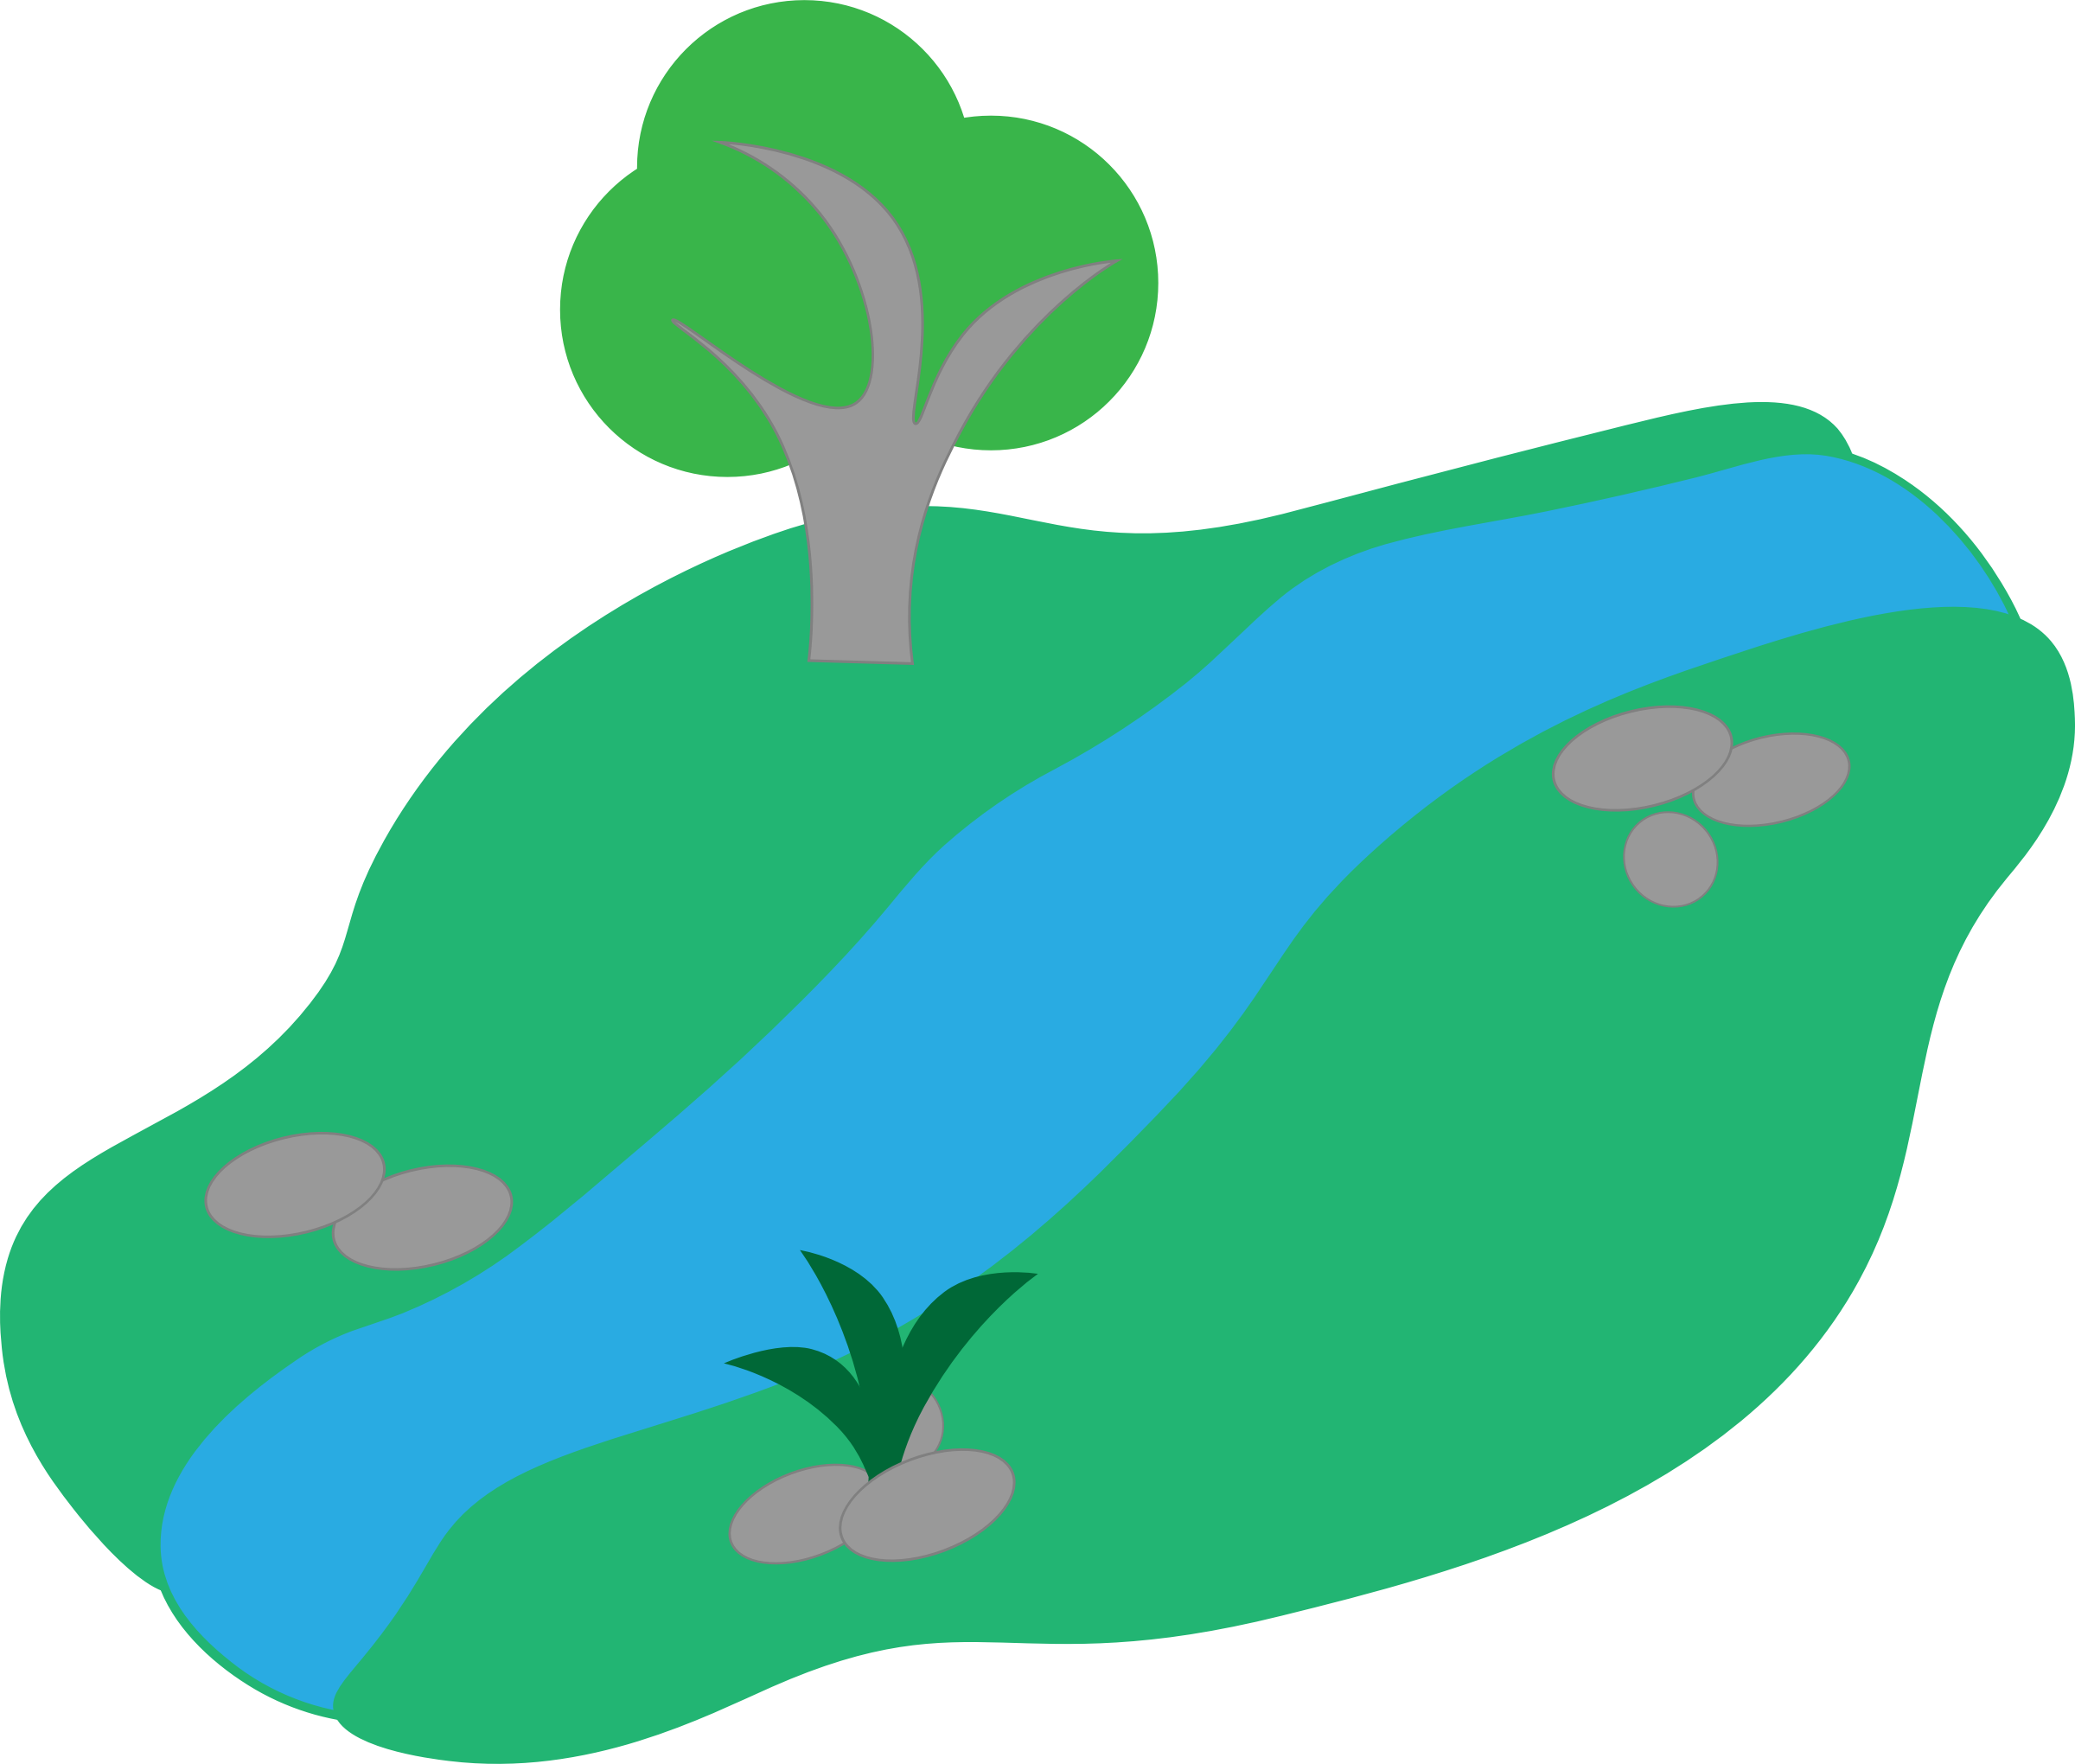 River stream png. Clipart basic with tree